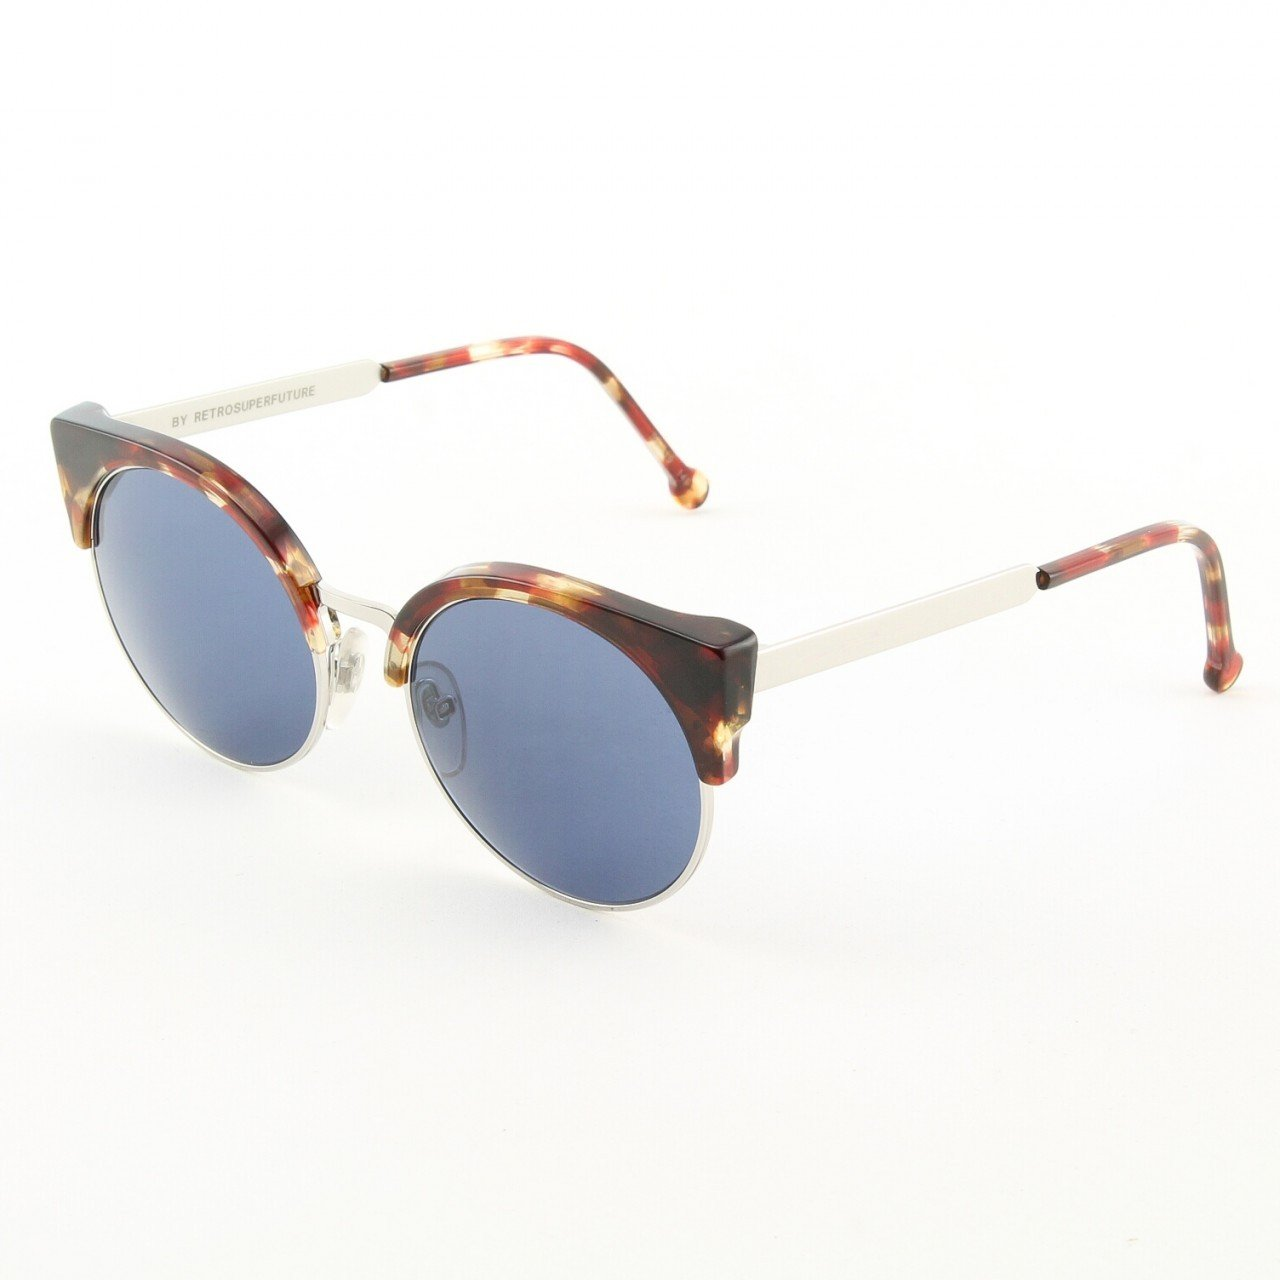 Super Lucia 576/3T Sunglasses Red Havana Chrome with Blue Zeiss Lenses by RETROSUPERFUTURE